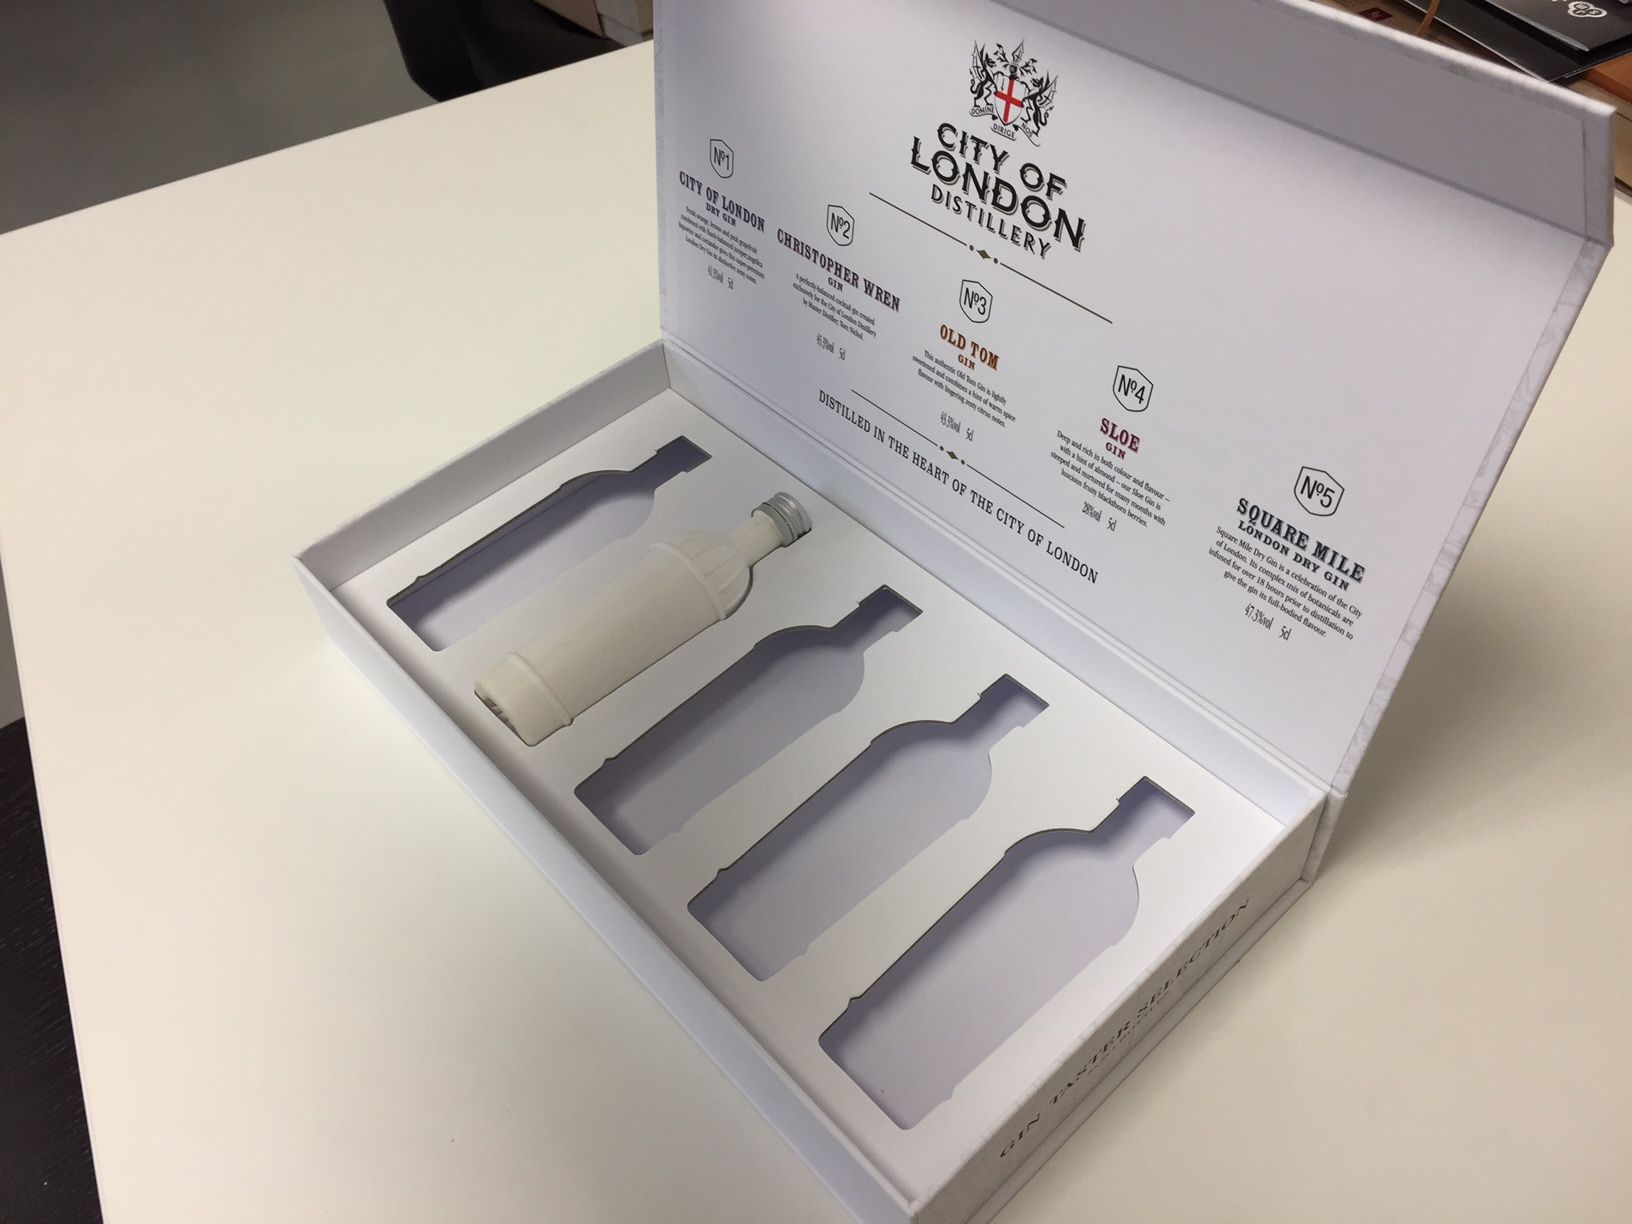 The way to use rigid board insert instead foam if you are after lower costs packaging.